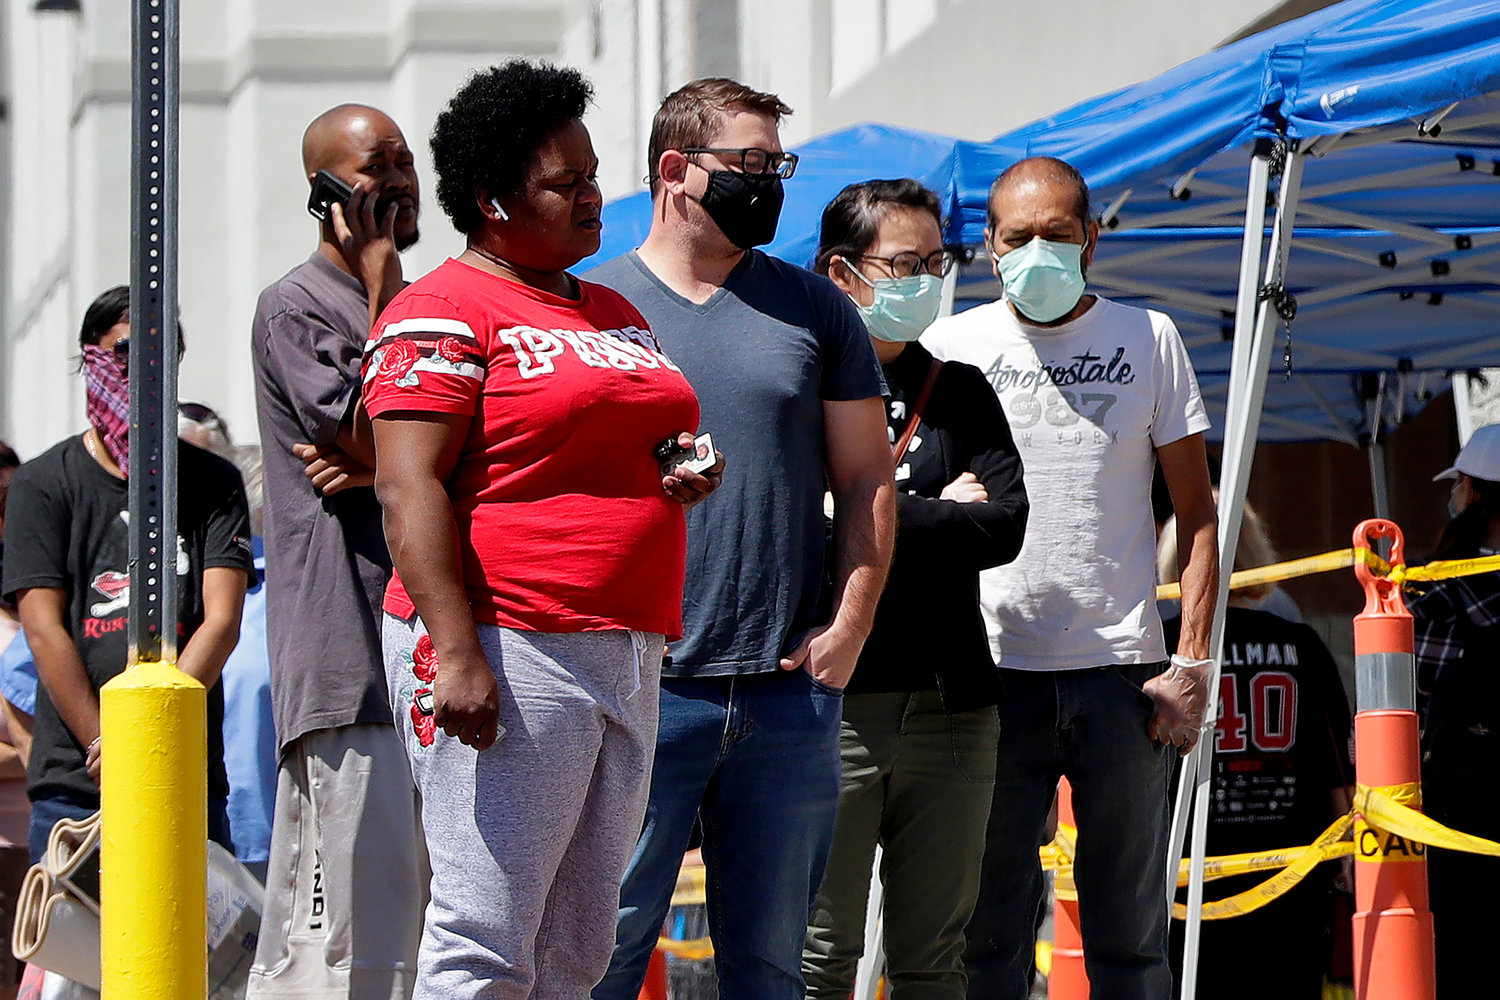 Some people wearing face masks wait in line to shop Saturday, April 4, 2020, in Tempe, Arizona.